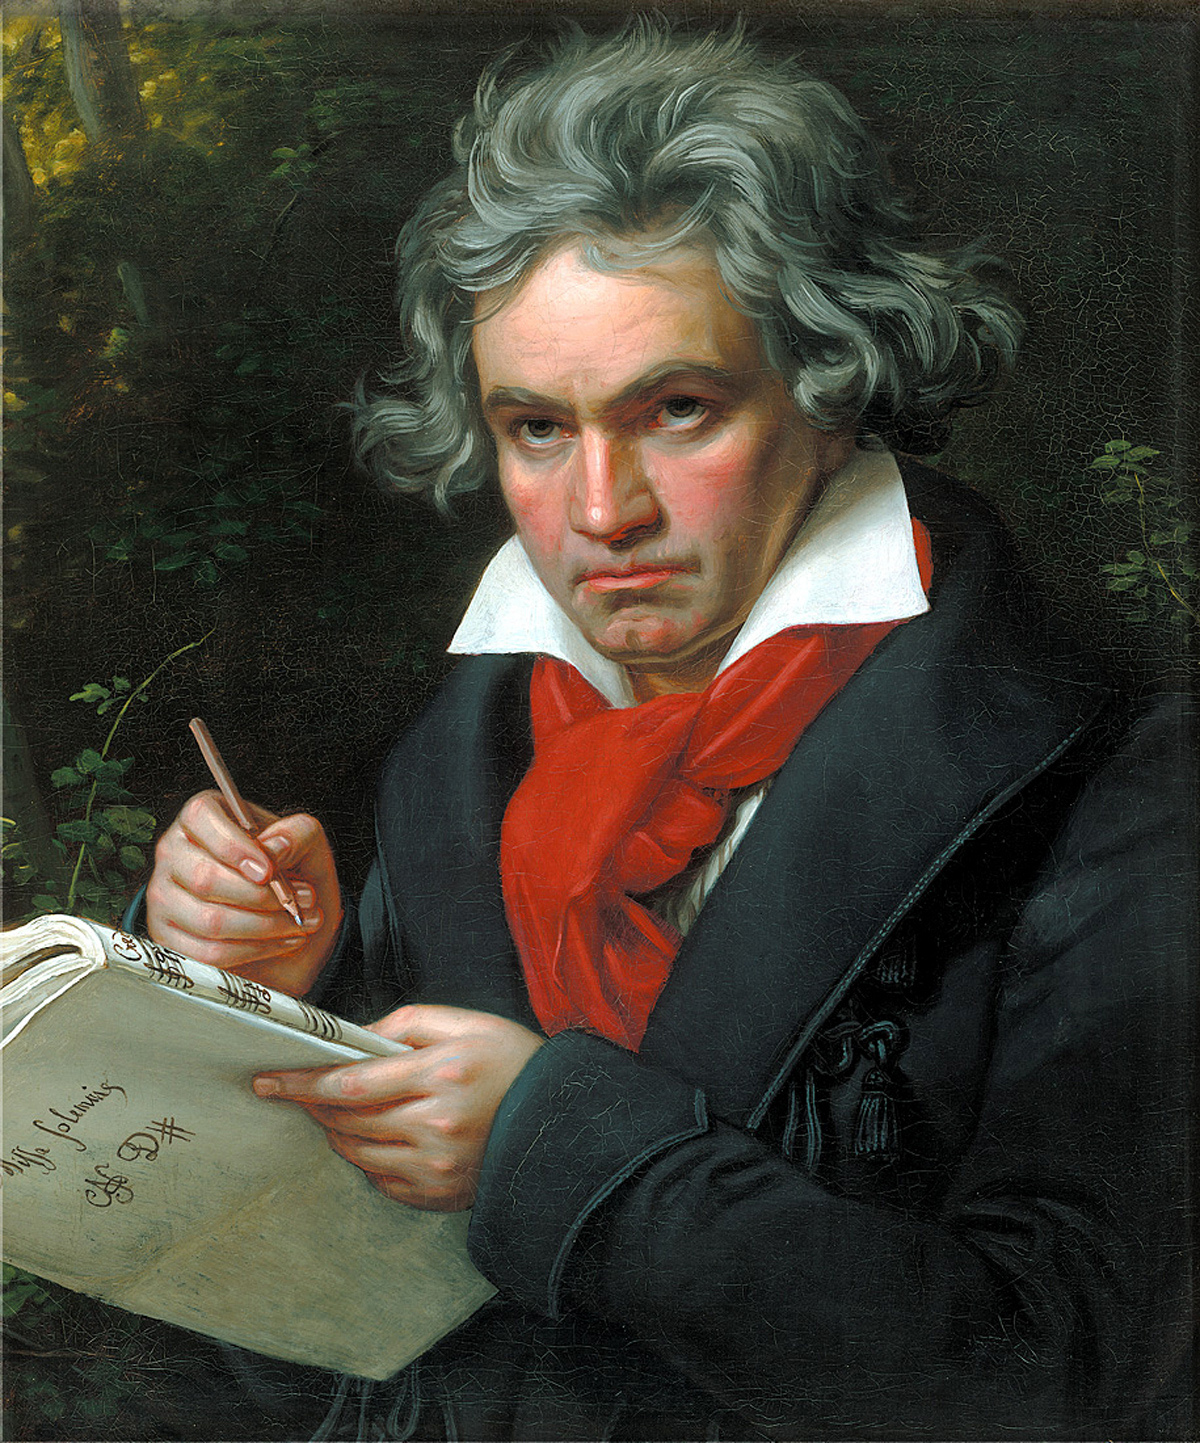 [Image]Remember that this musical genius created his greatest symphony when he was deaf..Beethoven